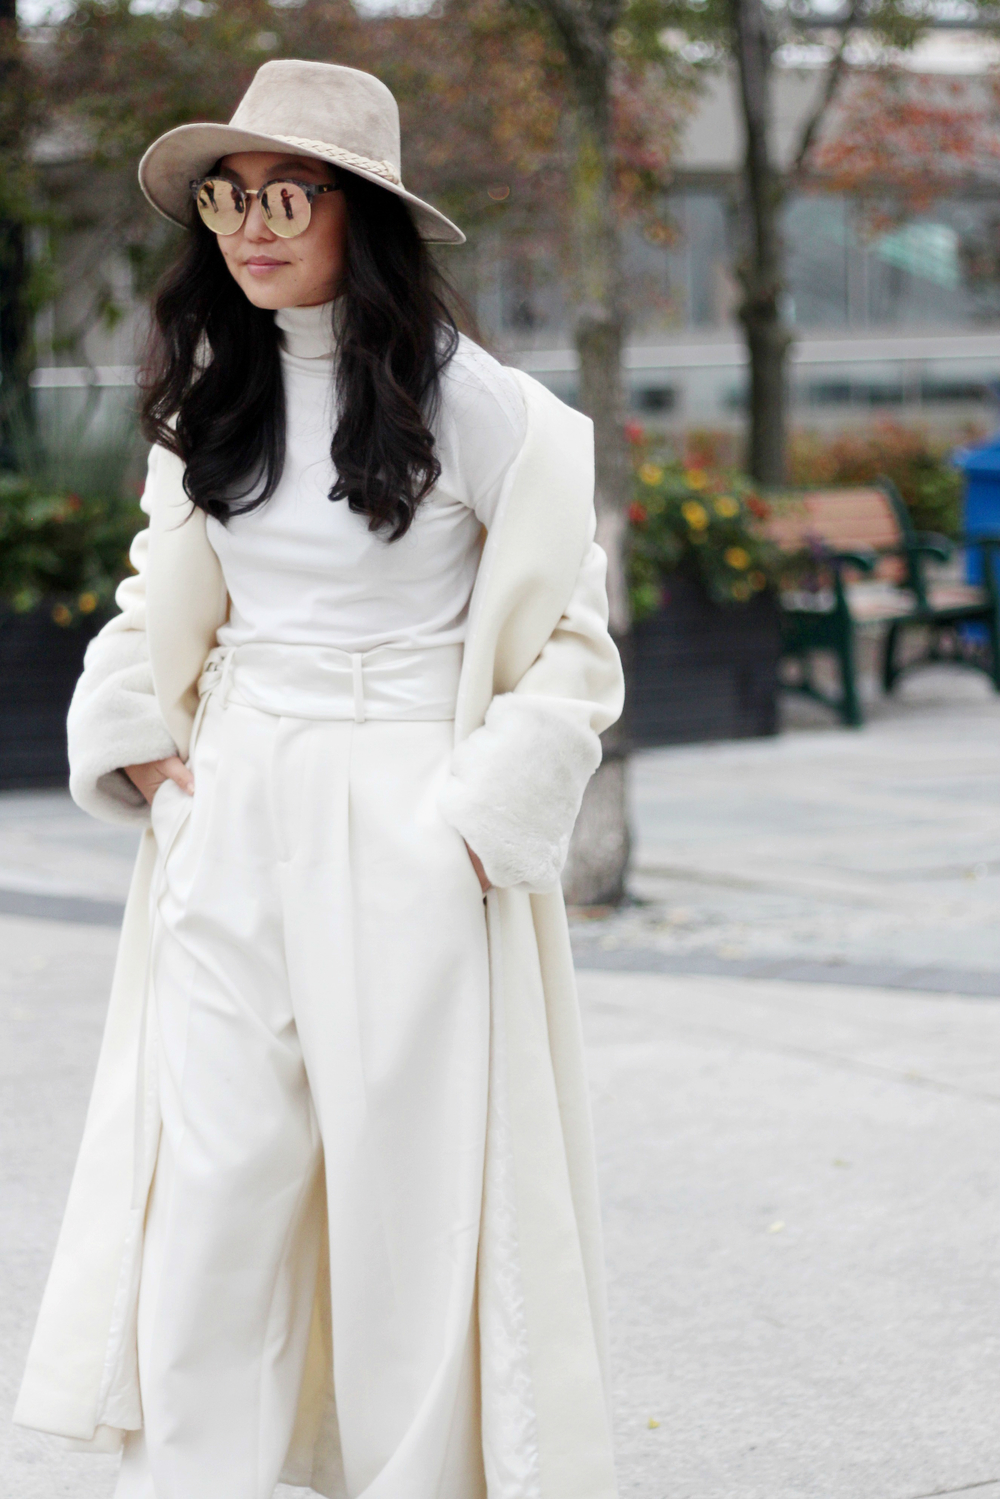 My favourite look from this set is definitely this shades of white look worn by Amarsana Gendunova.